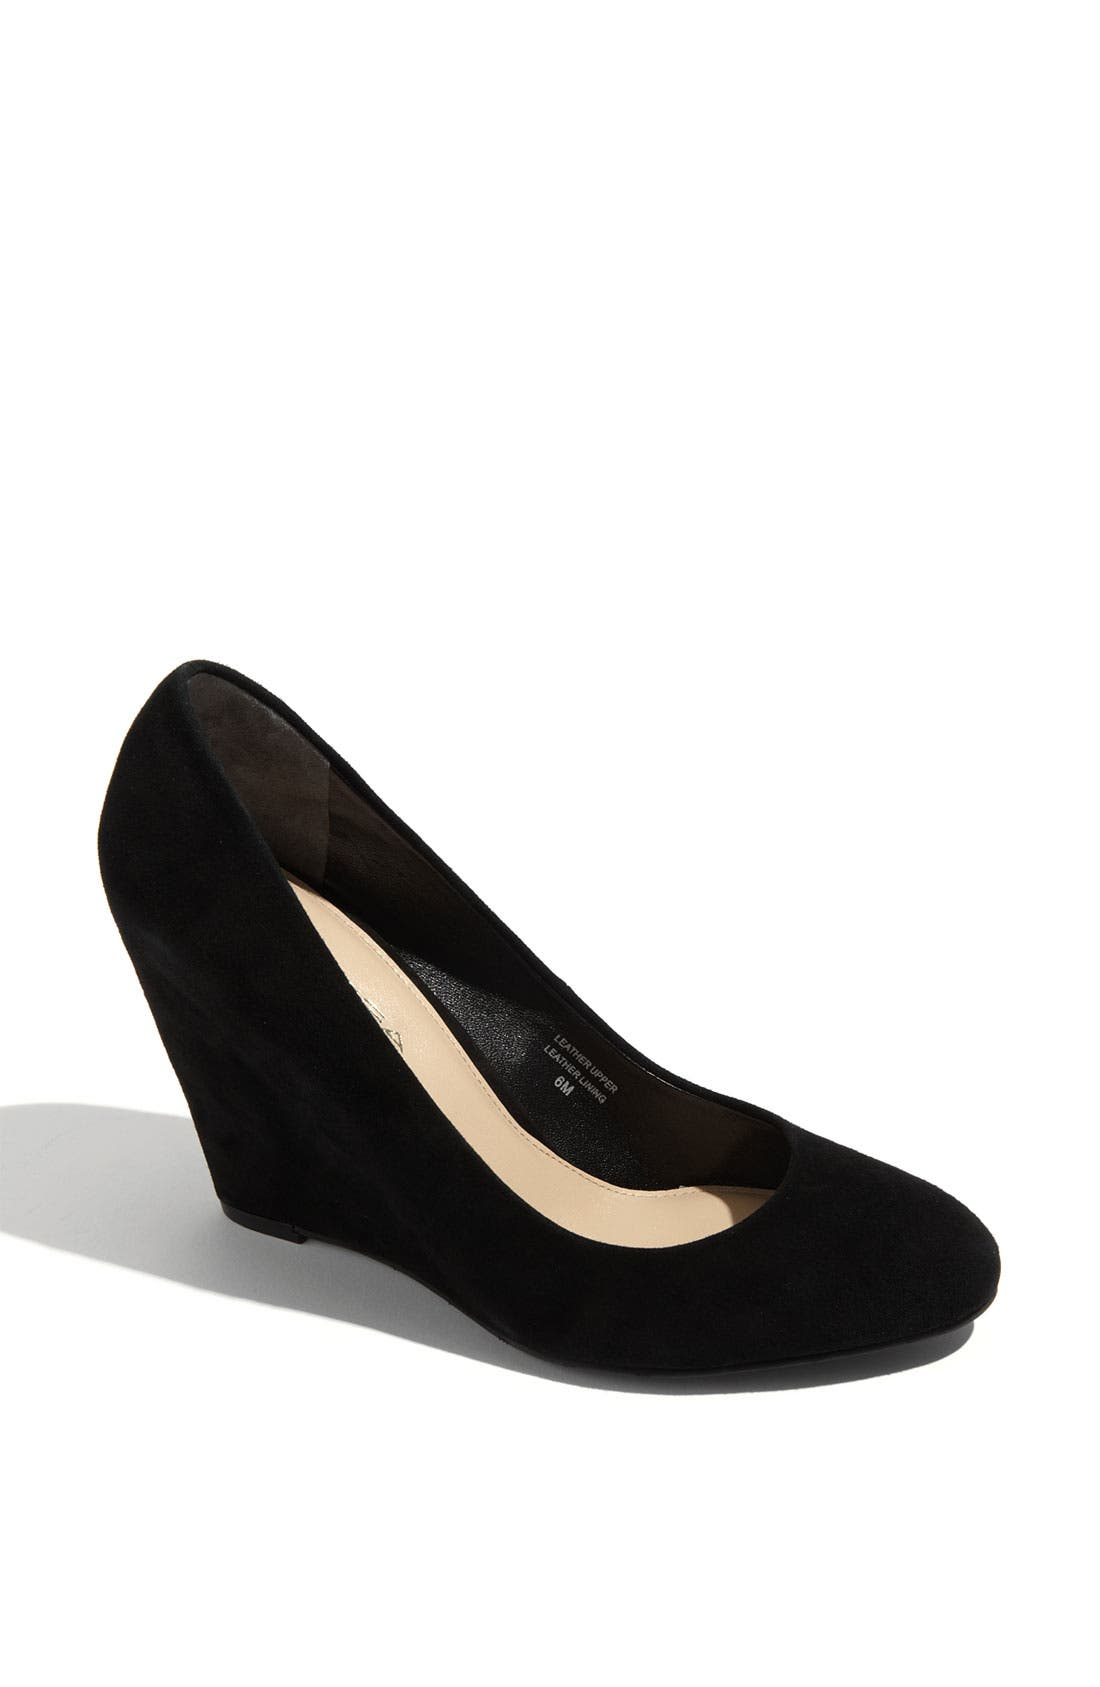 'Fiona' Pump, Main, color, 001